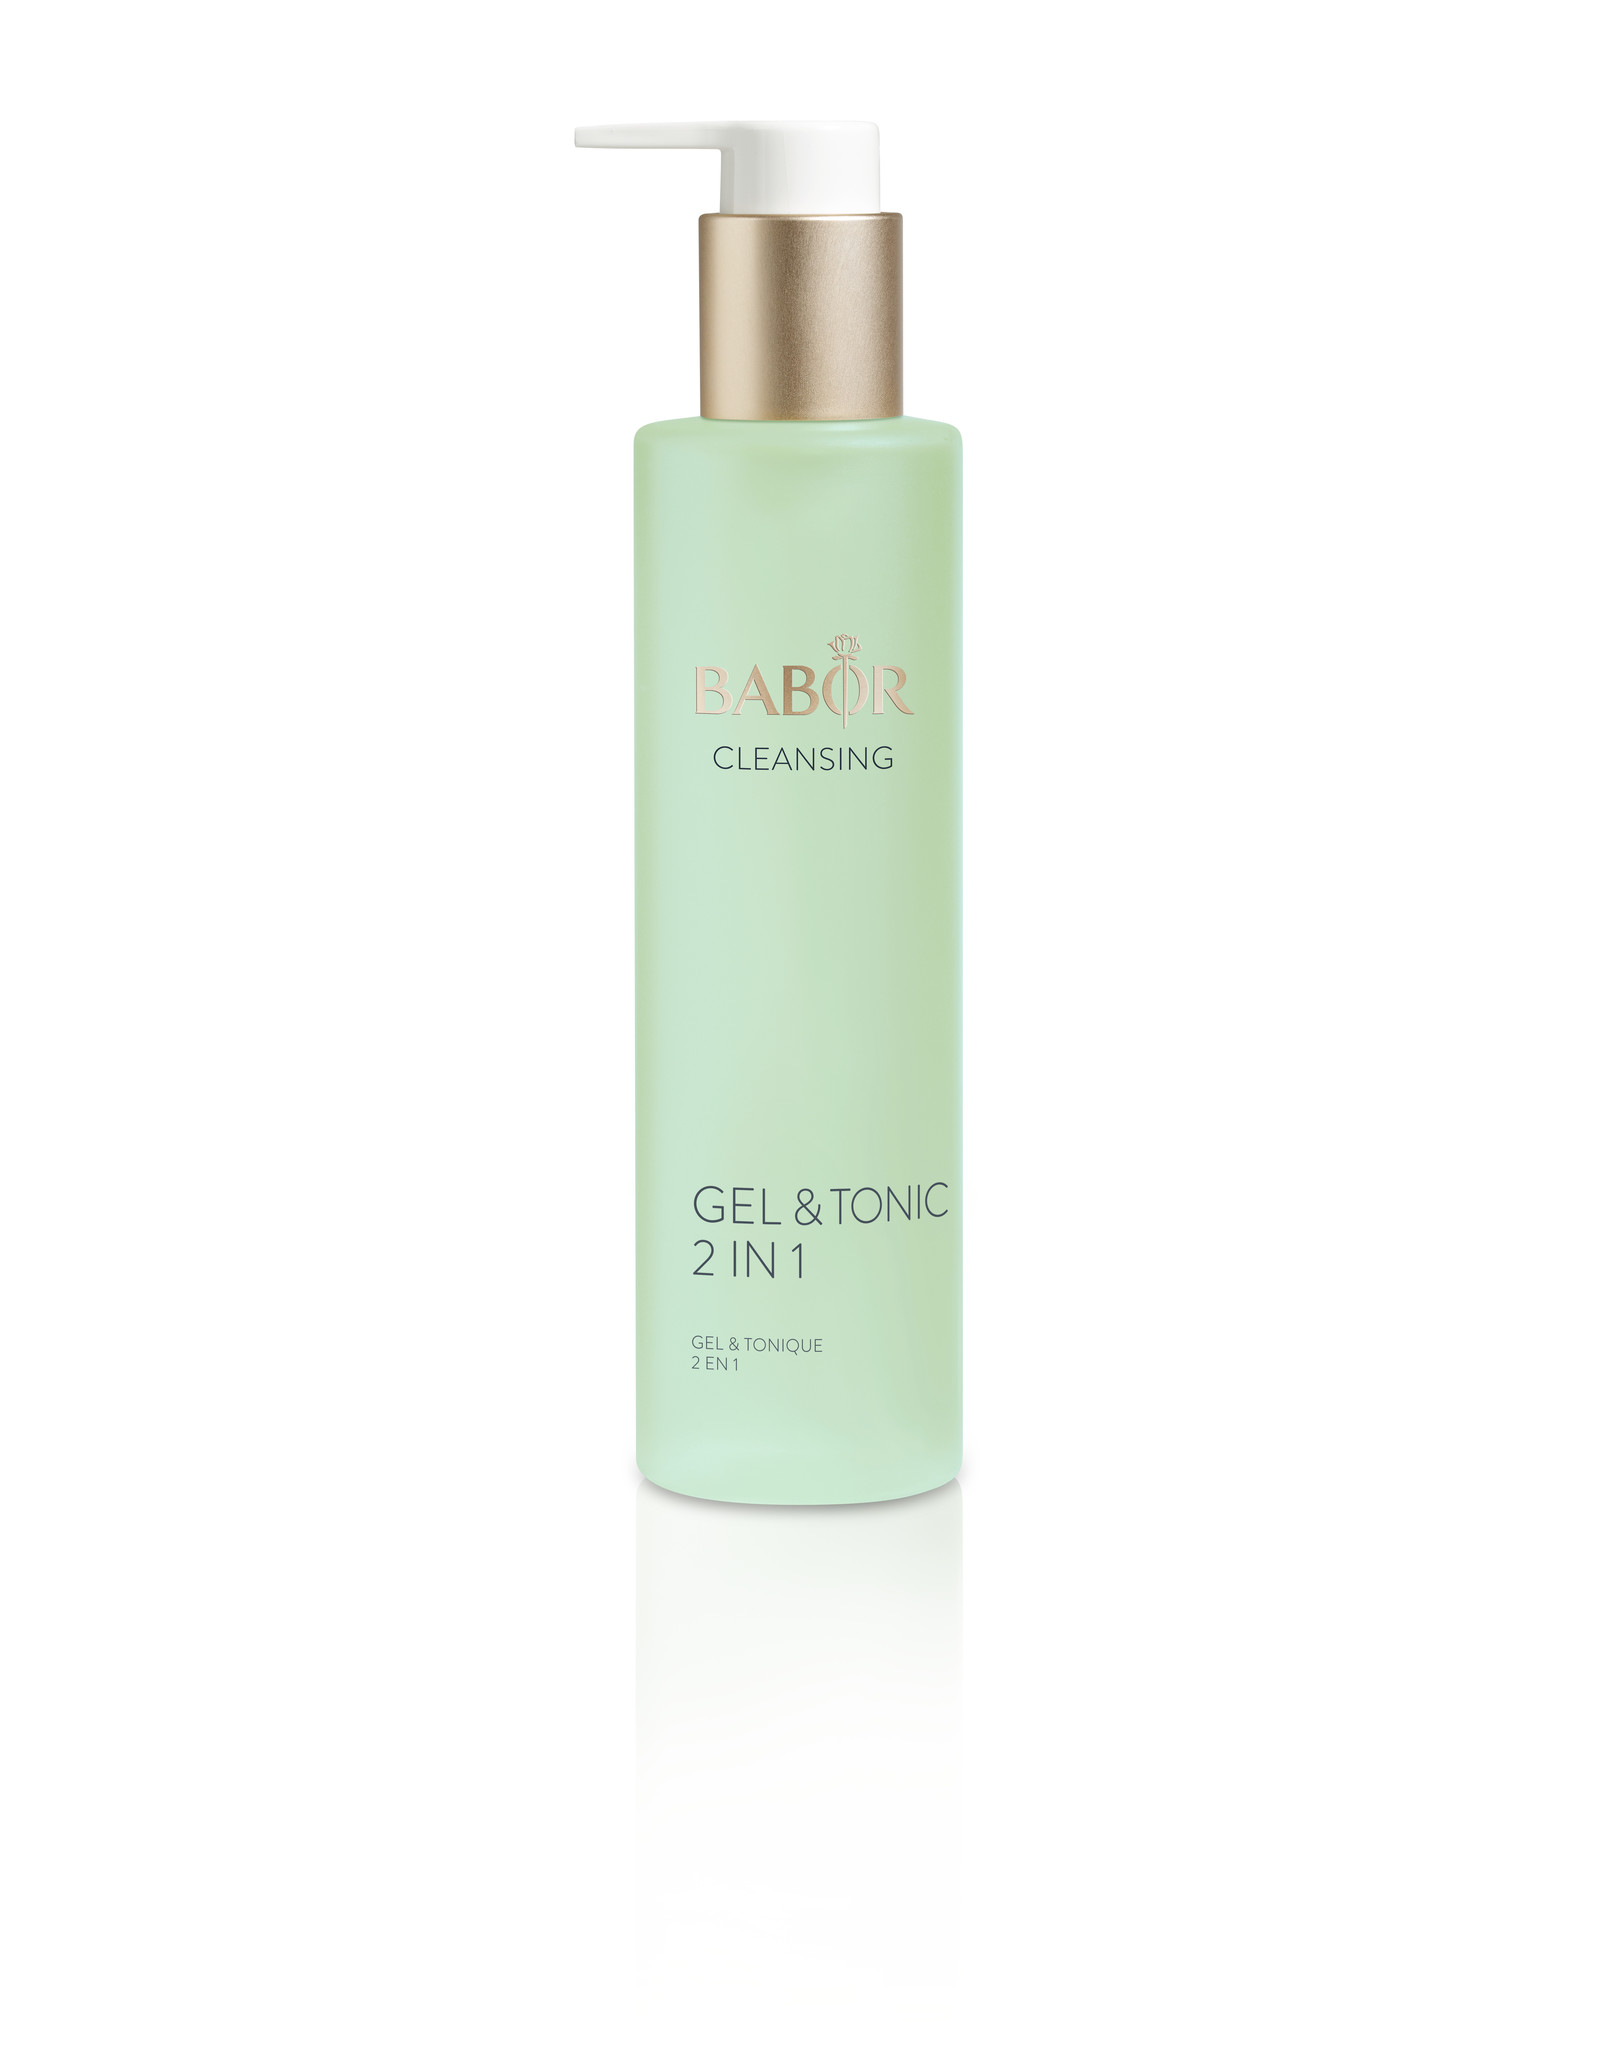 BABOR CLEANSING CLEANSING GEL&TONIC 200 ML